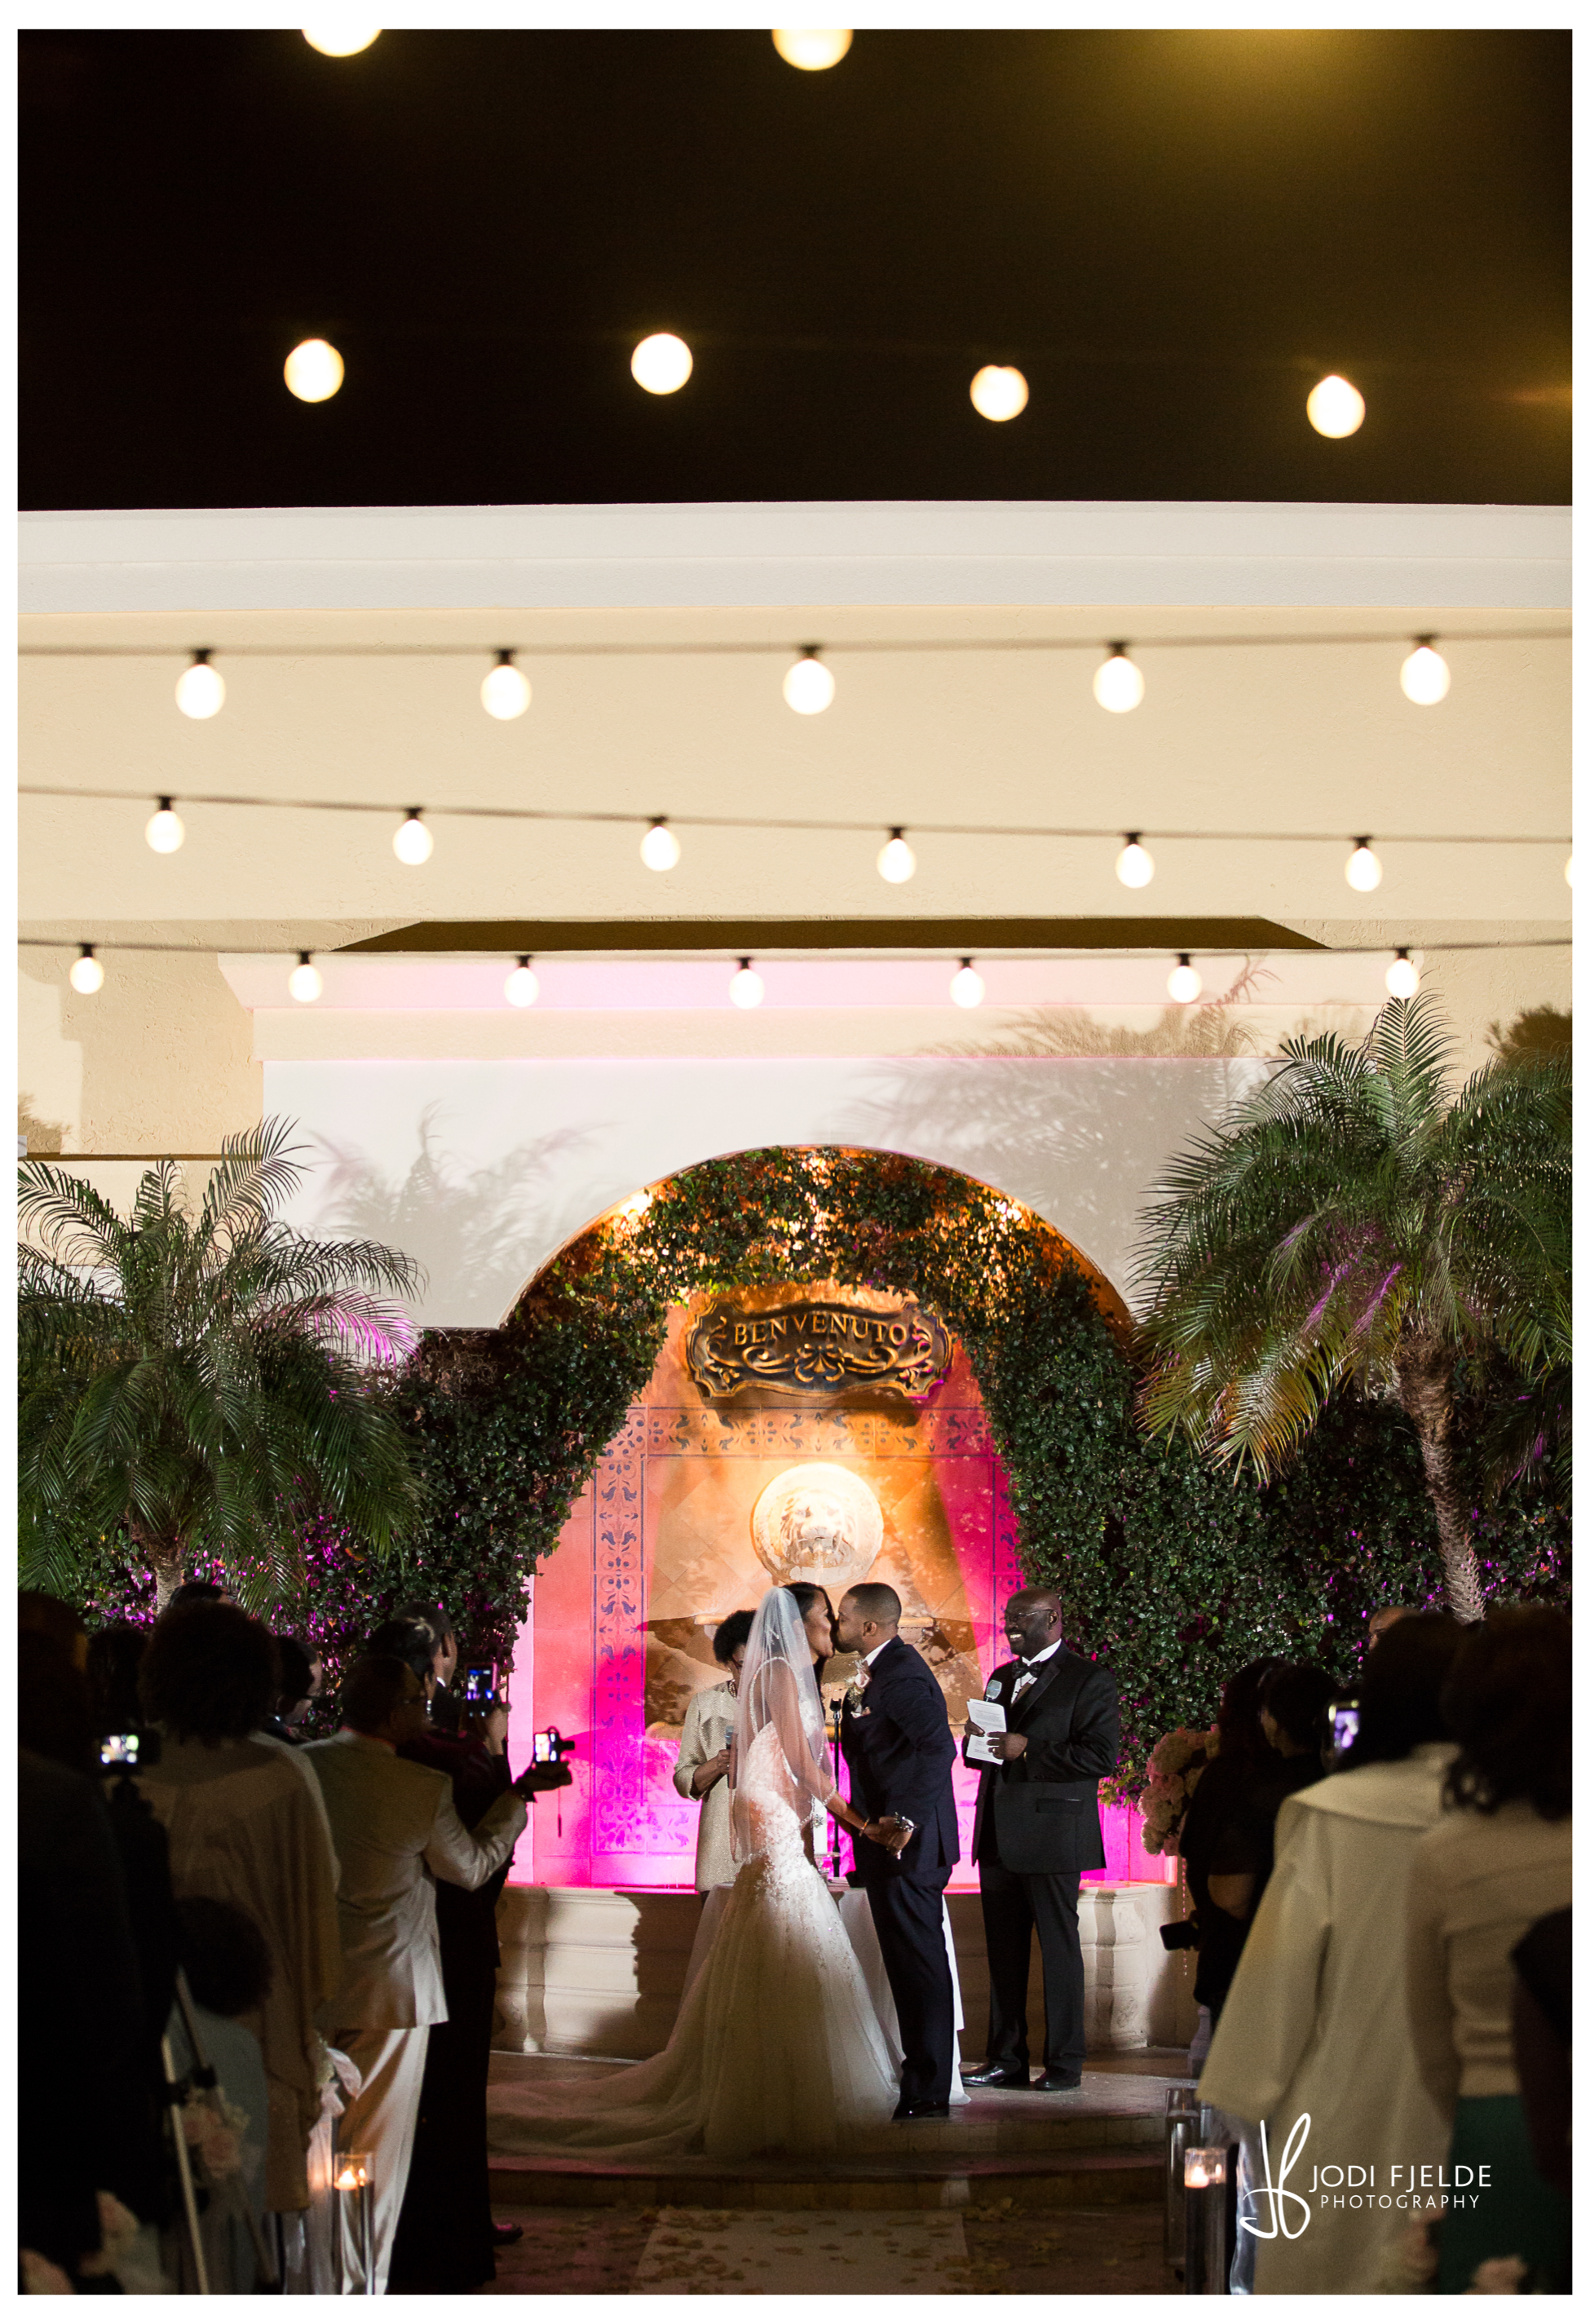 Benvenuto_wedding_Boynton_Beach_Jodi_Fjelde_Photography_Nikki_Otis_married_17.jpg